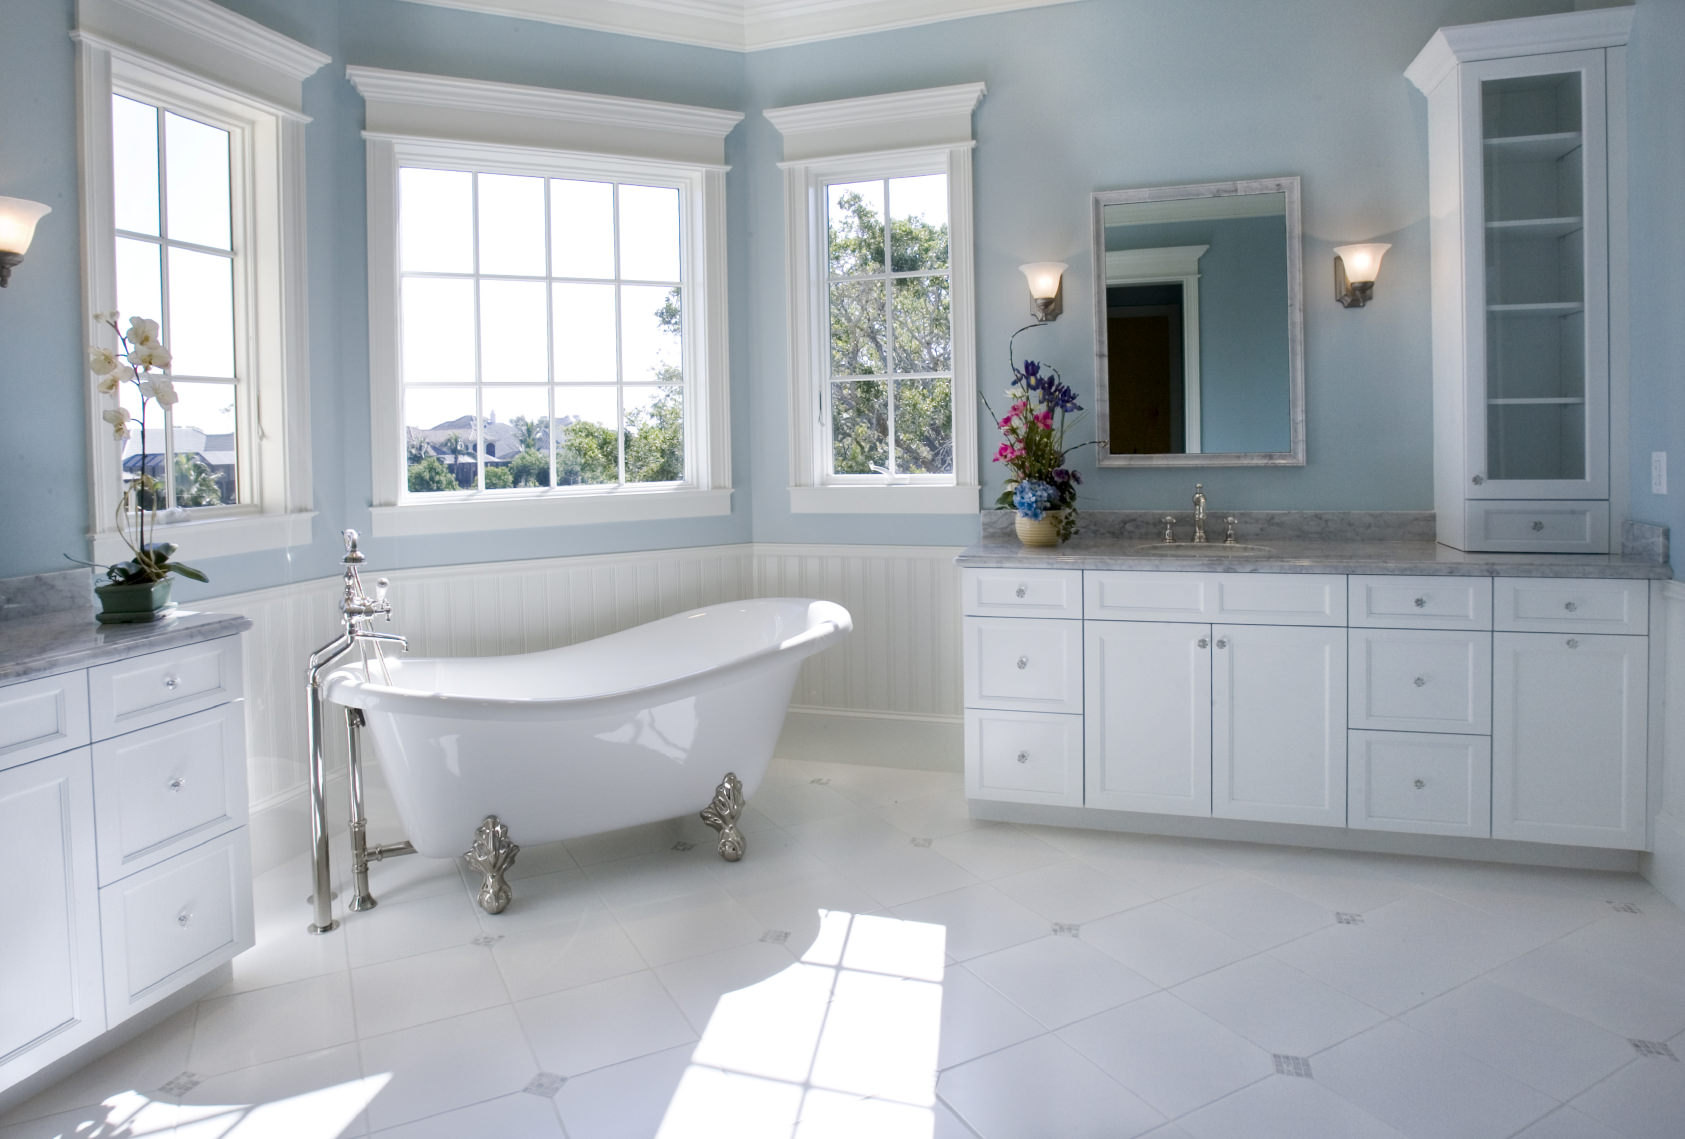 Large primary bathroom featuring white tiles flooring and blue walls. The room offers sink counters with wall sconces along with a freestanding tub by the windows.